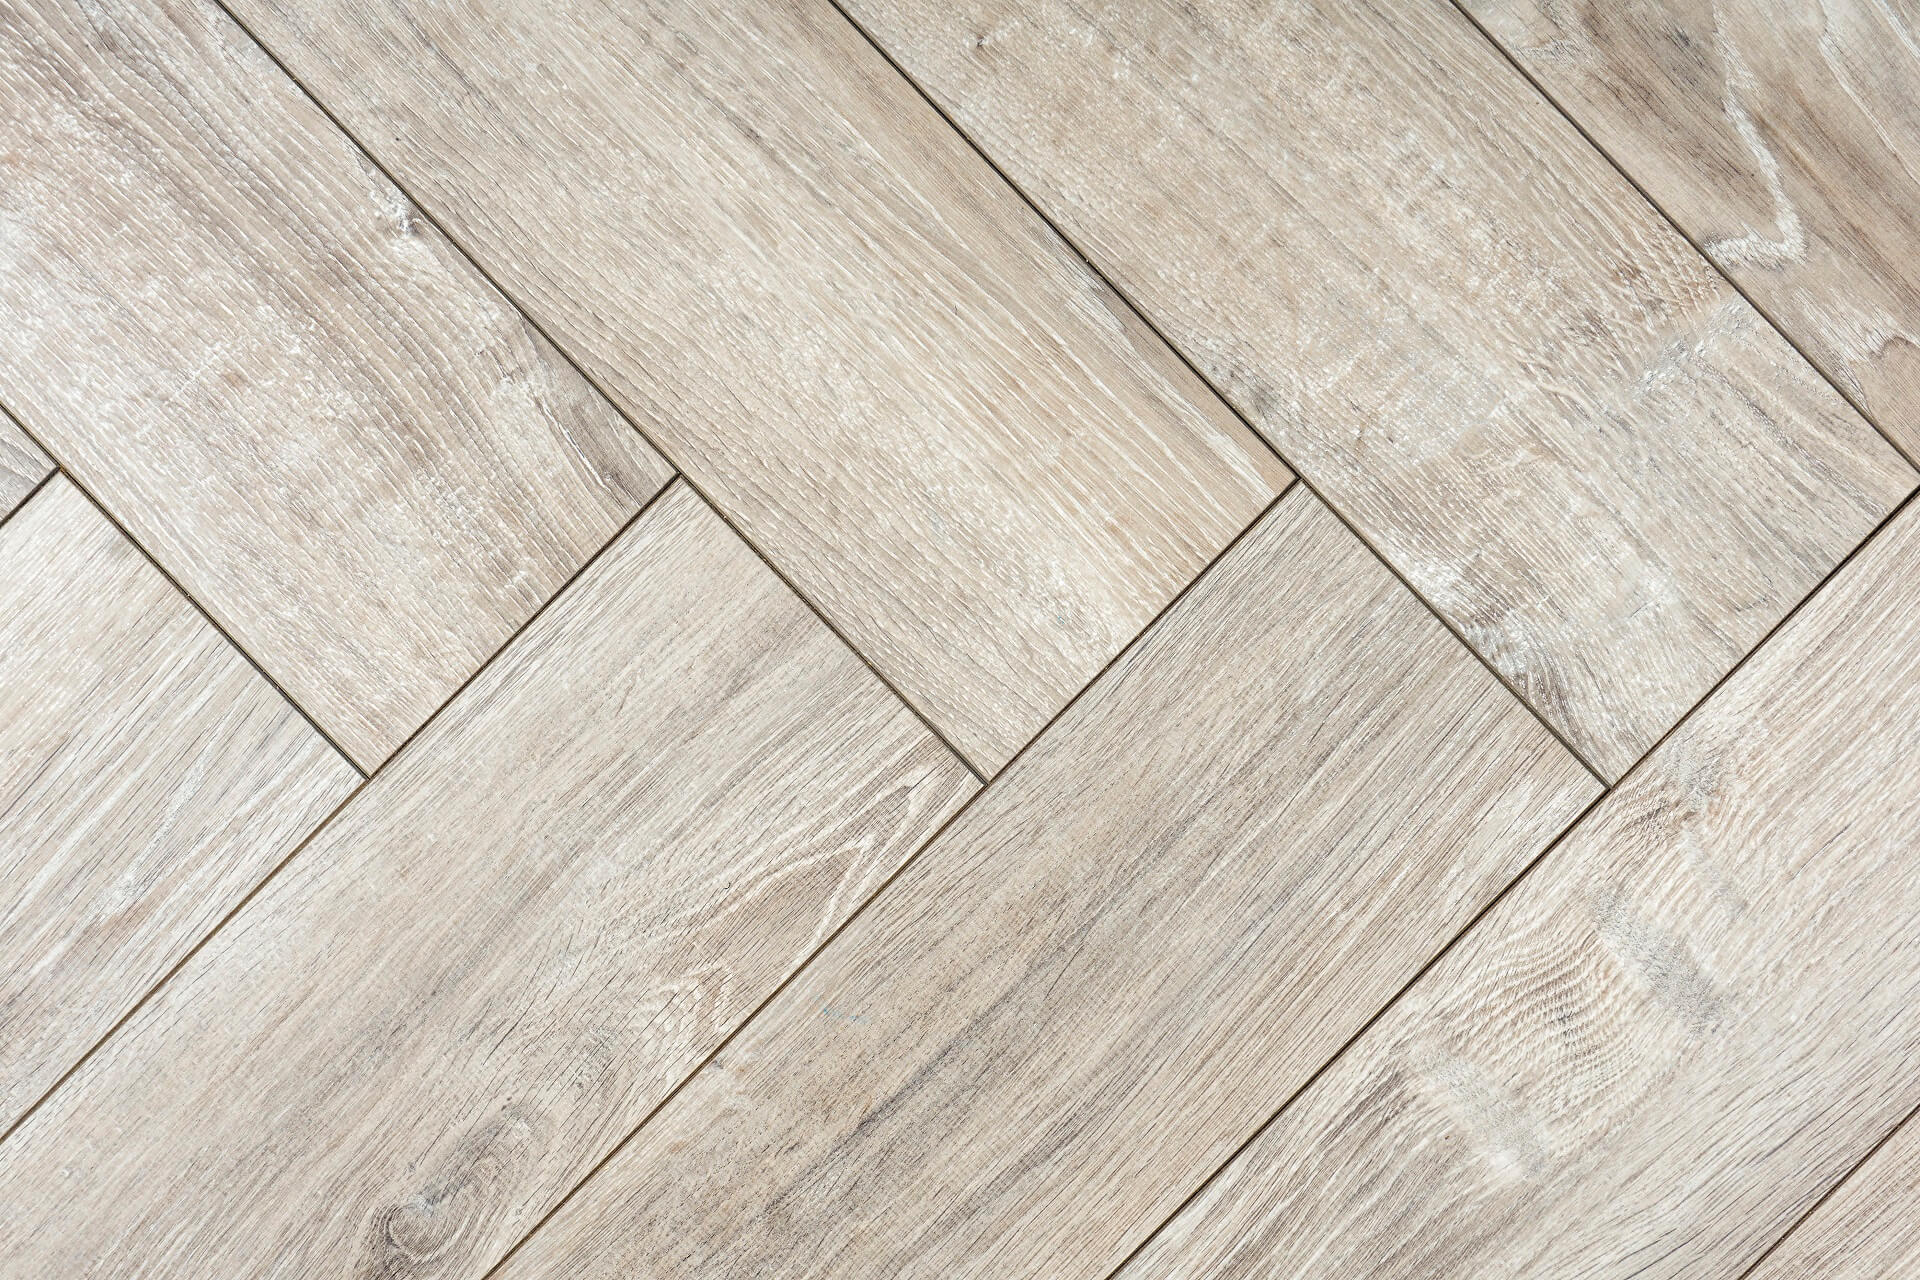 Chevron vs. herringbone: which pattern to choose for a wood floor